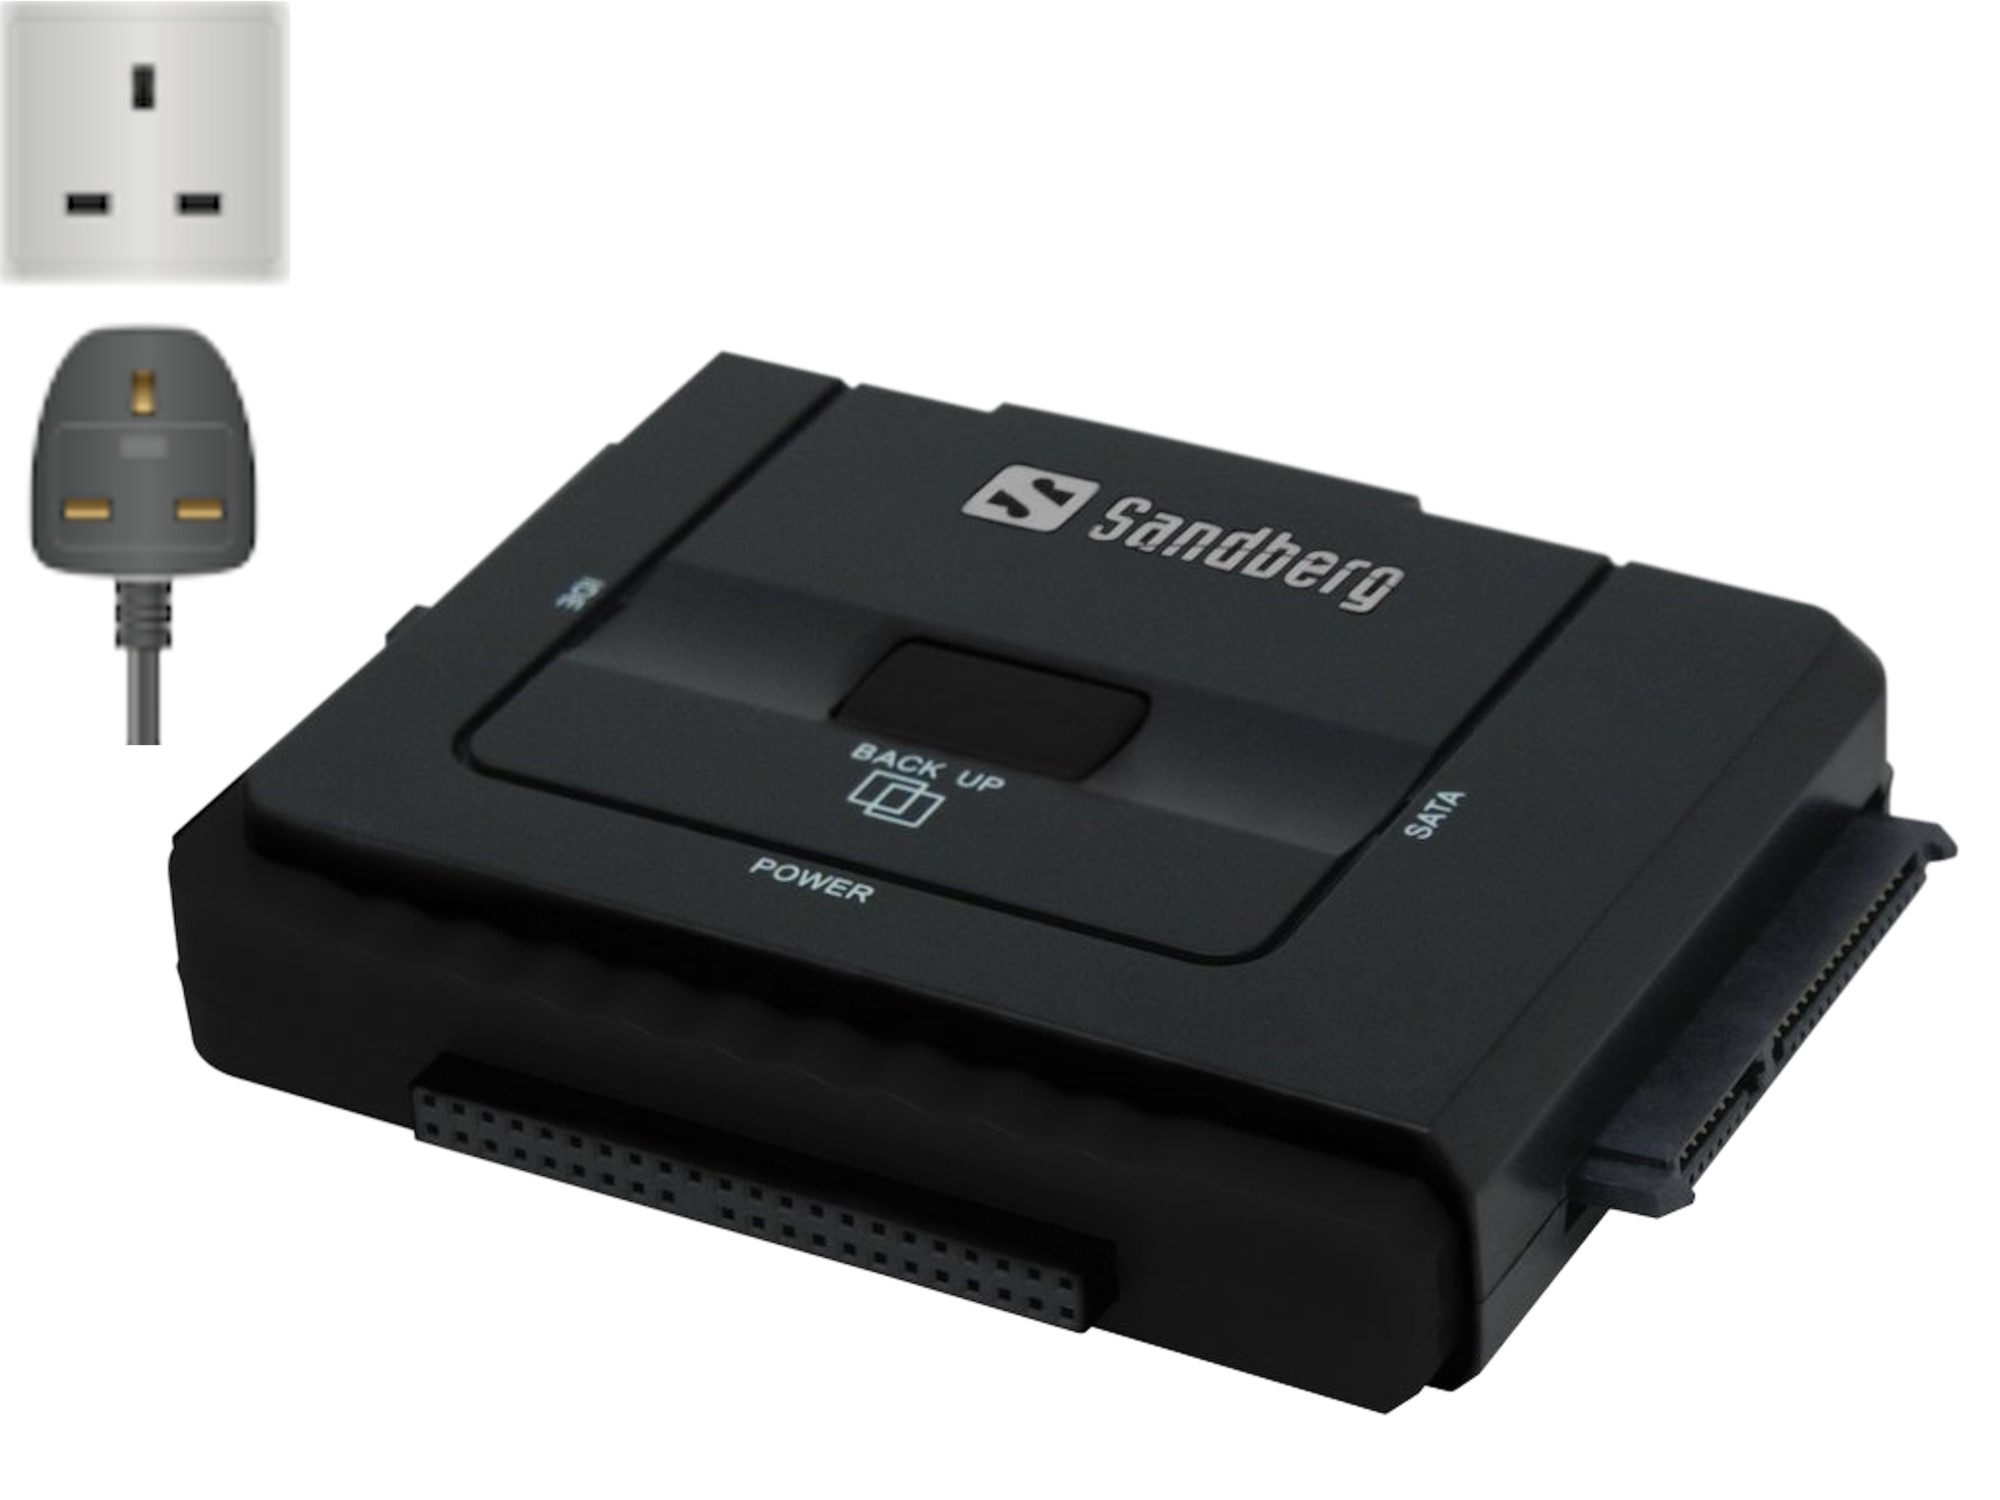 SANDBERG 133-80 USB 3.0 MULTI HARDDISK LINK UK